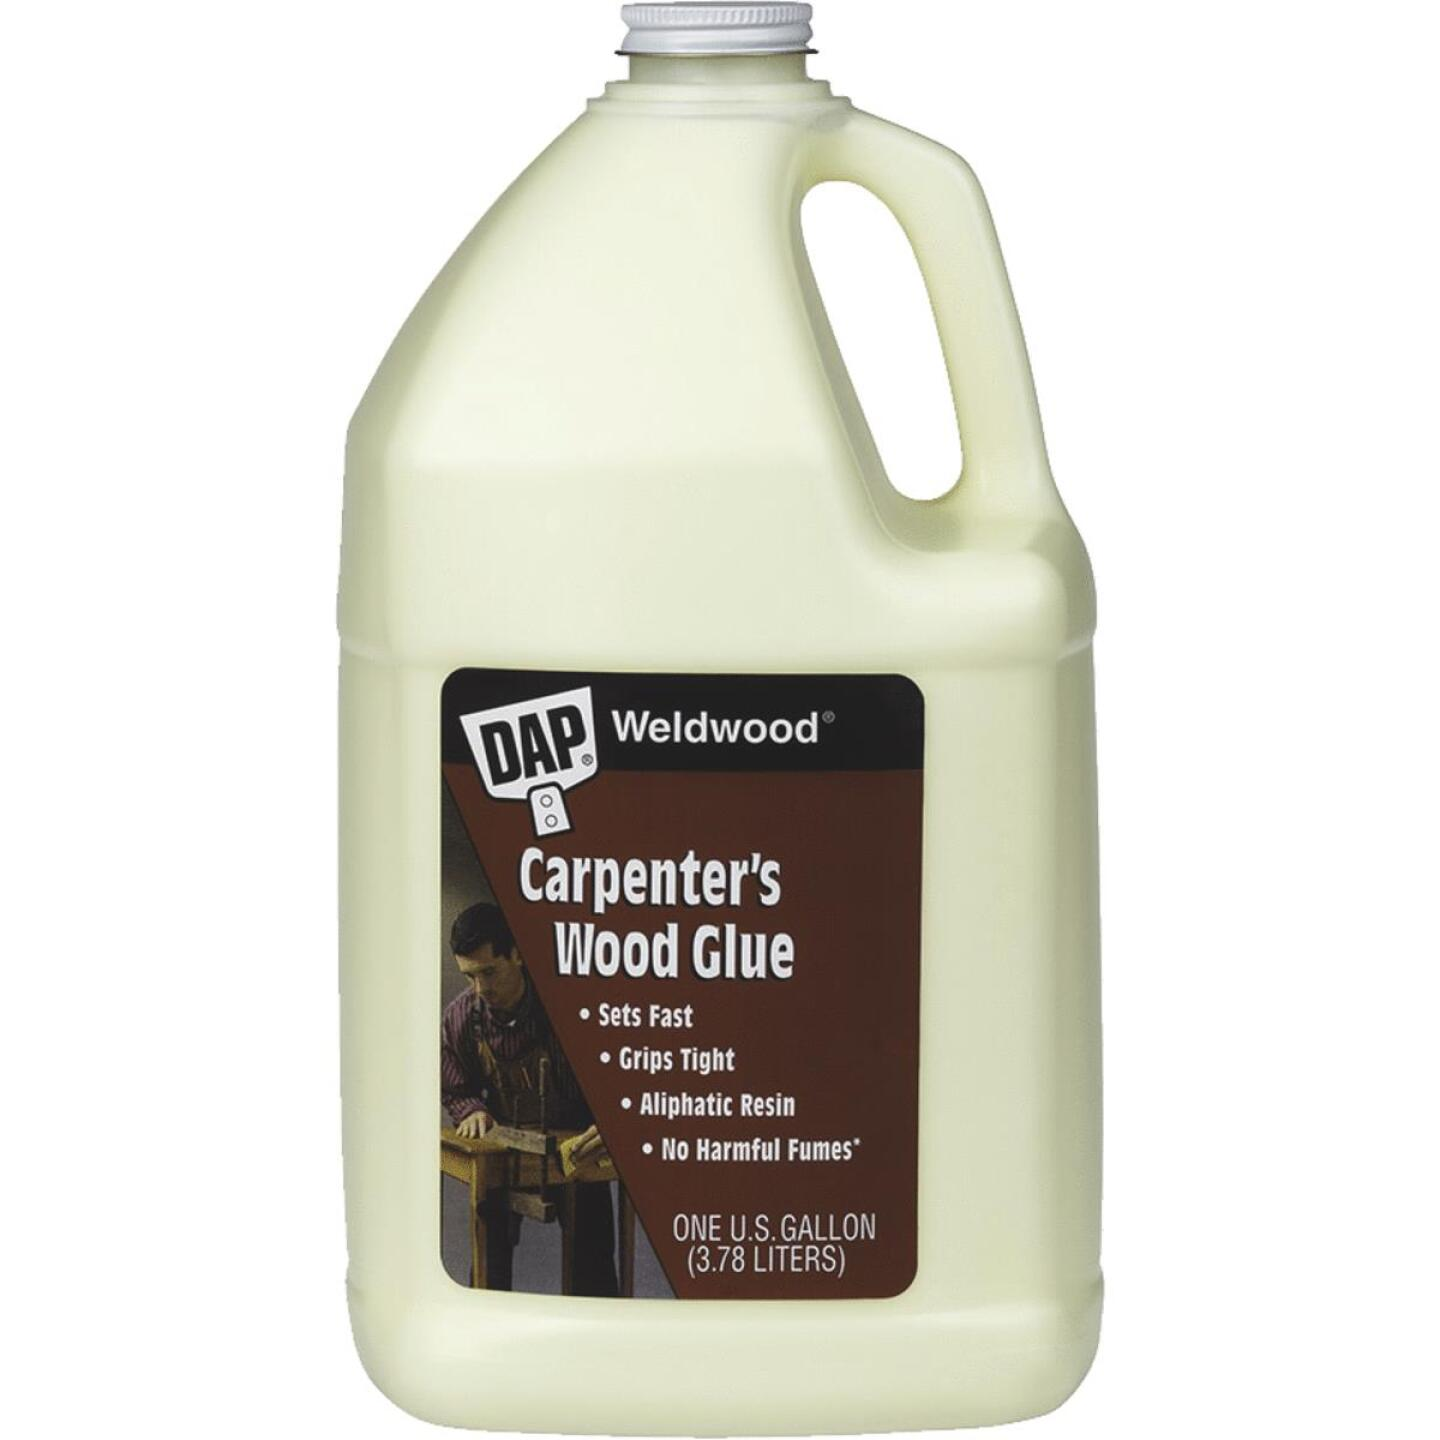 DAP Weldwood 1 Gal. Carpenter's Wood Glue Image 1